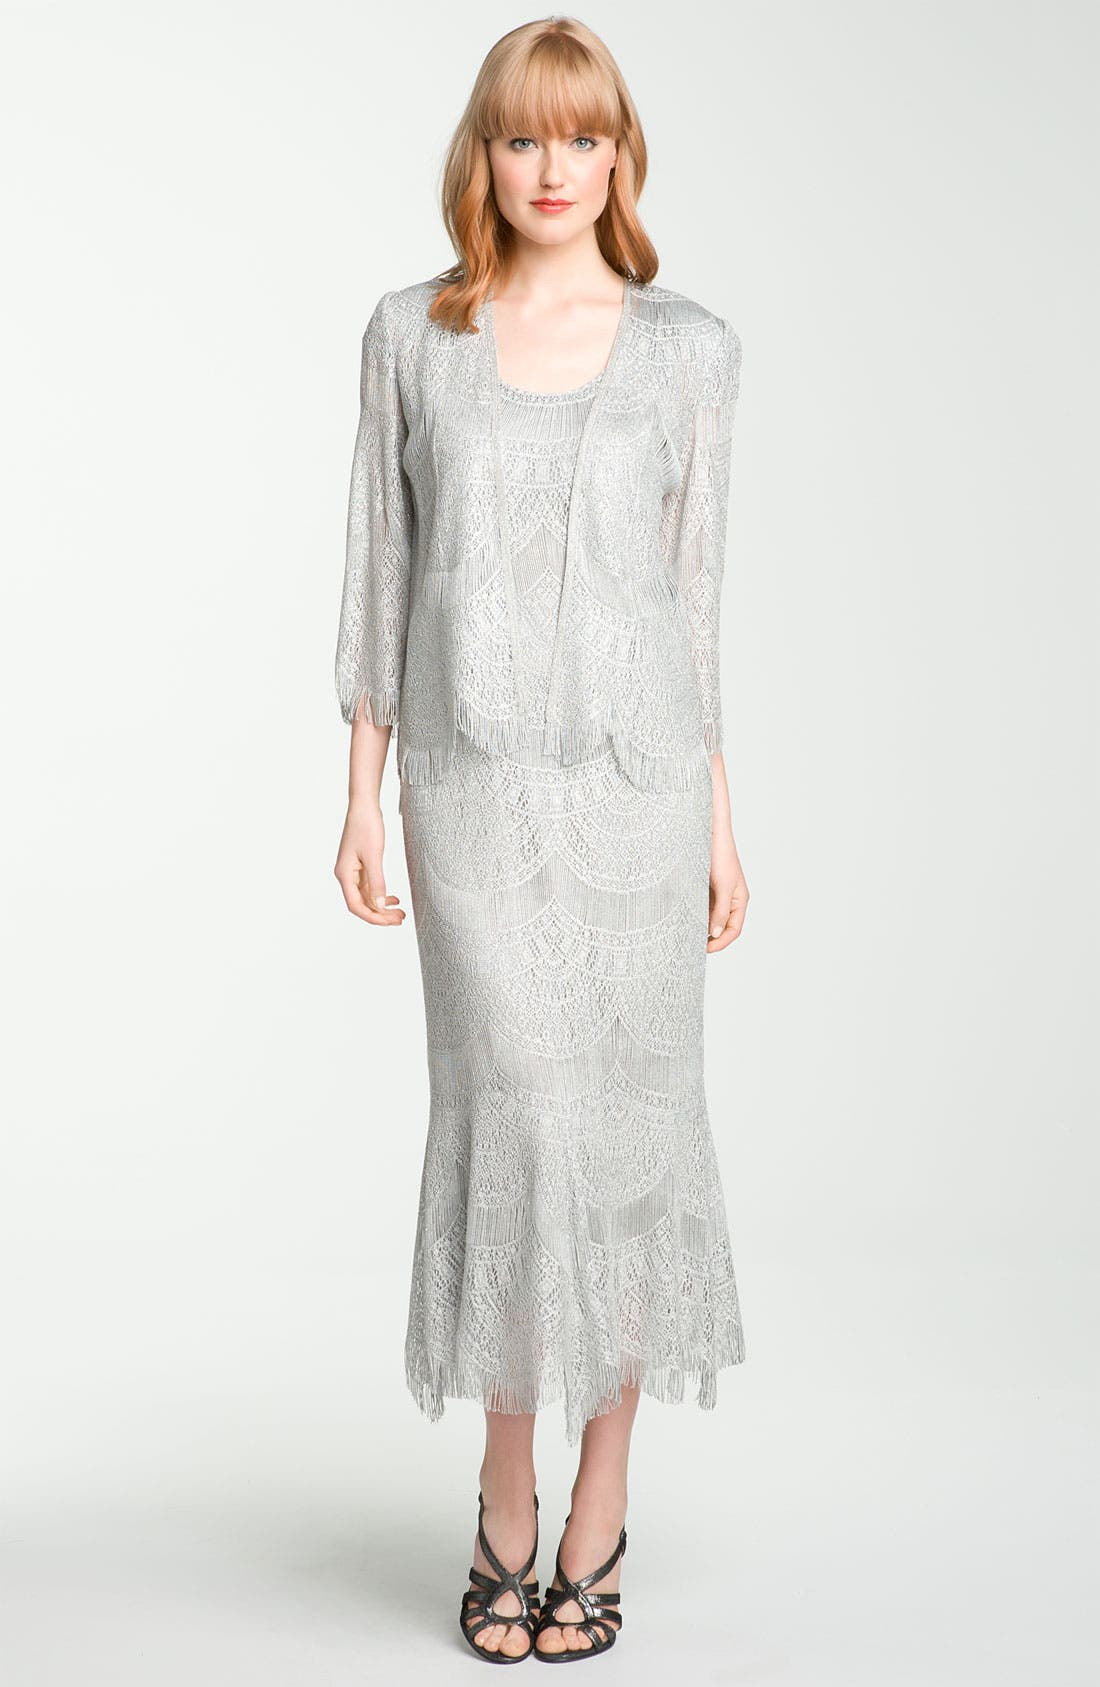 Main Image - Damianou Lace Dress & Jacket